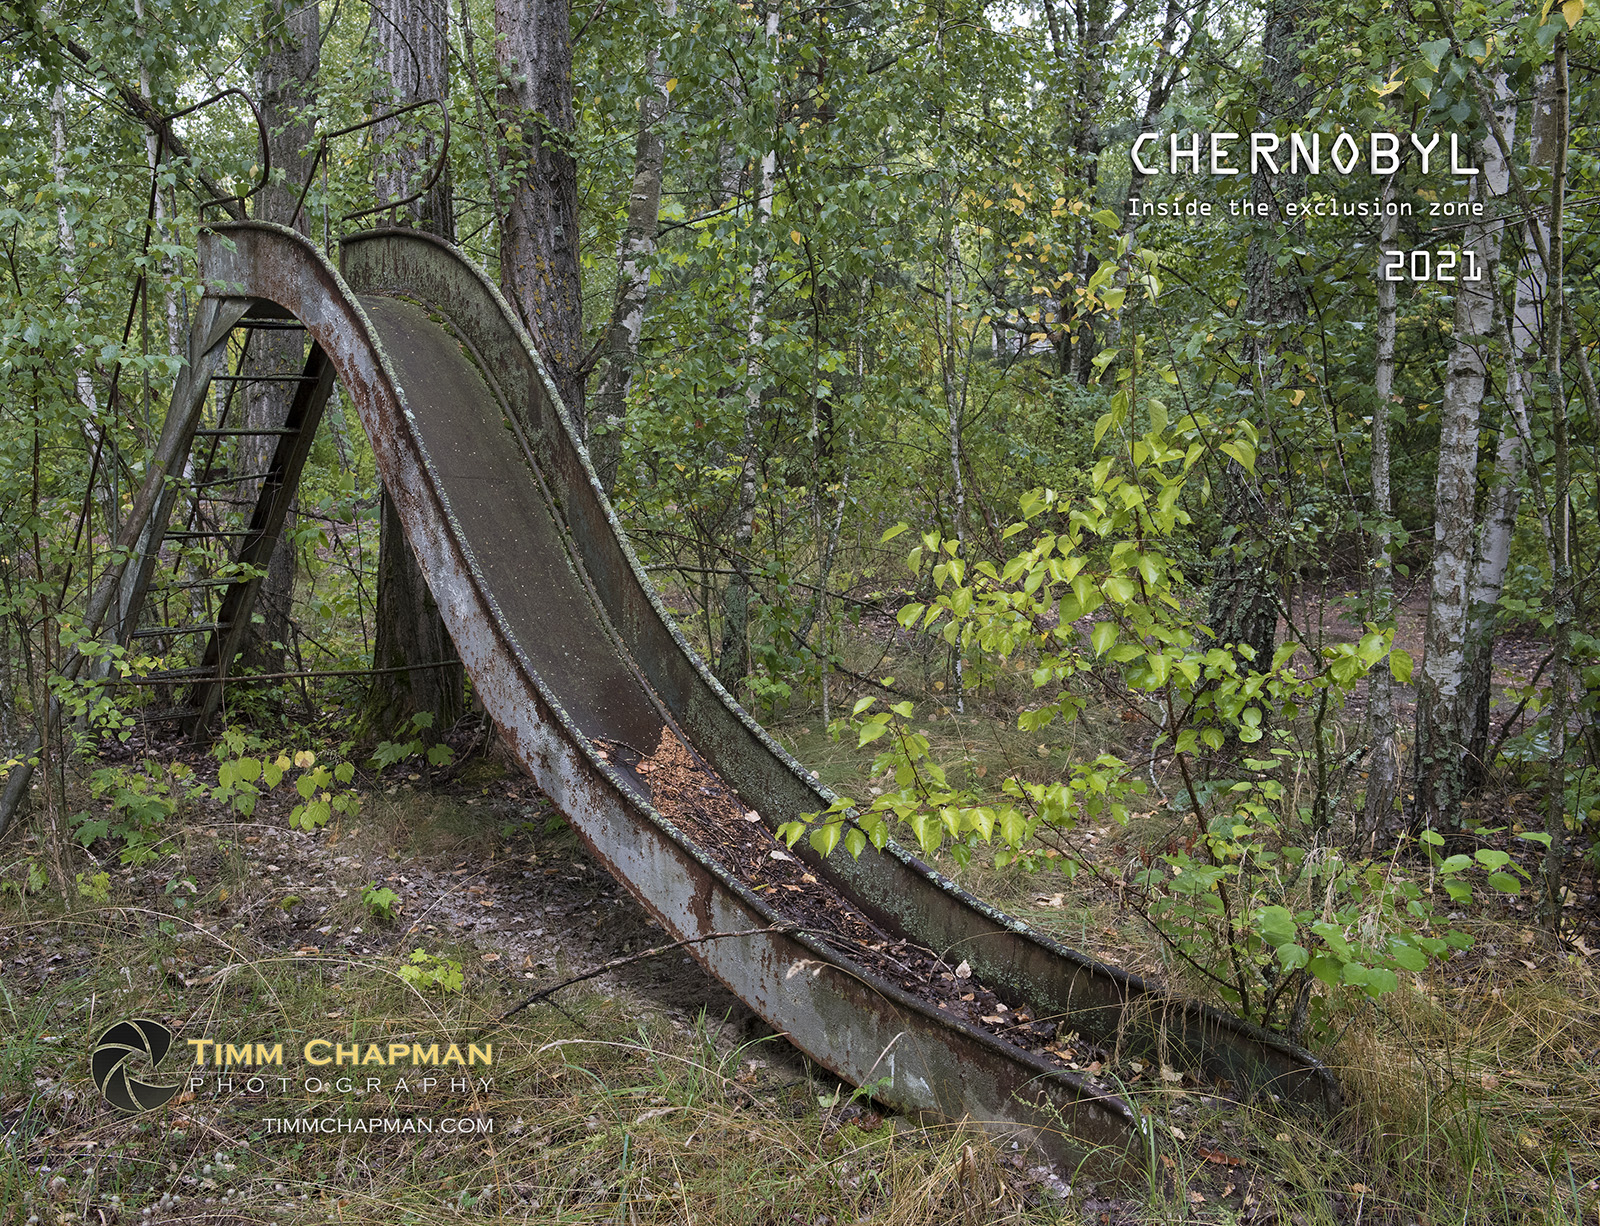 A collection of images of from the ill-fated area around Chernobyl presented in a 12 month calendar for 2021